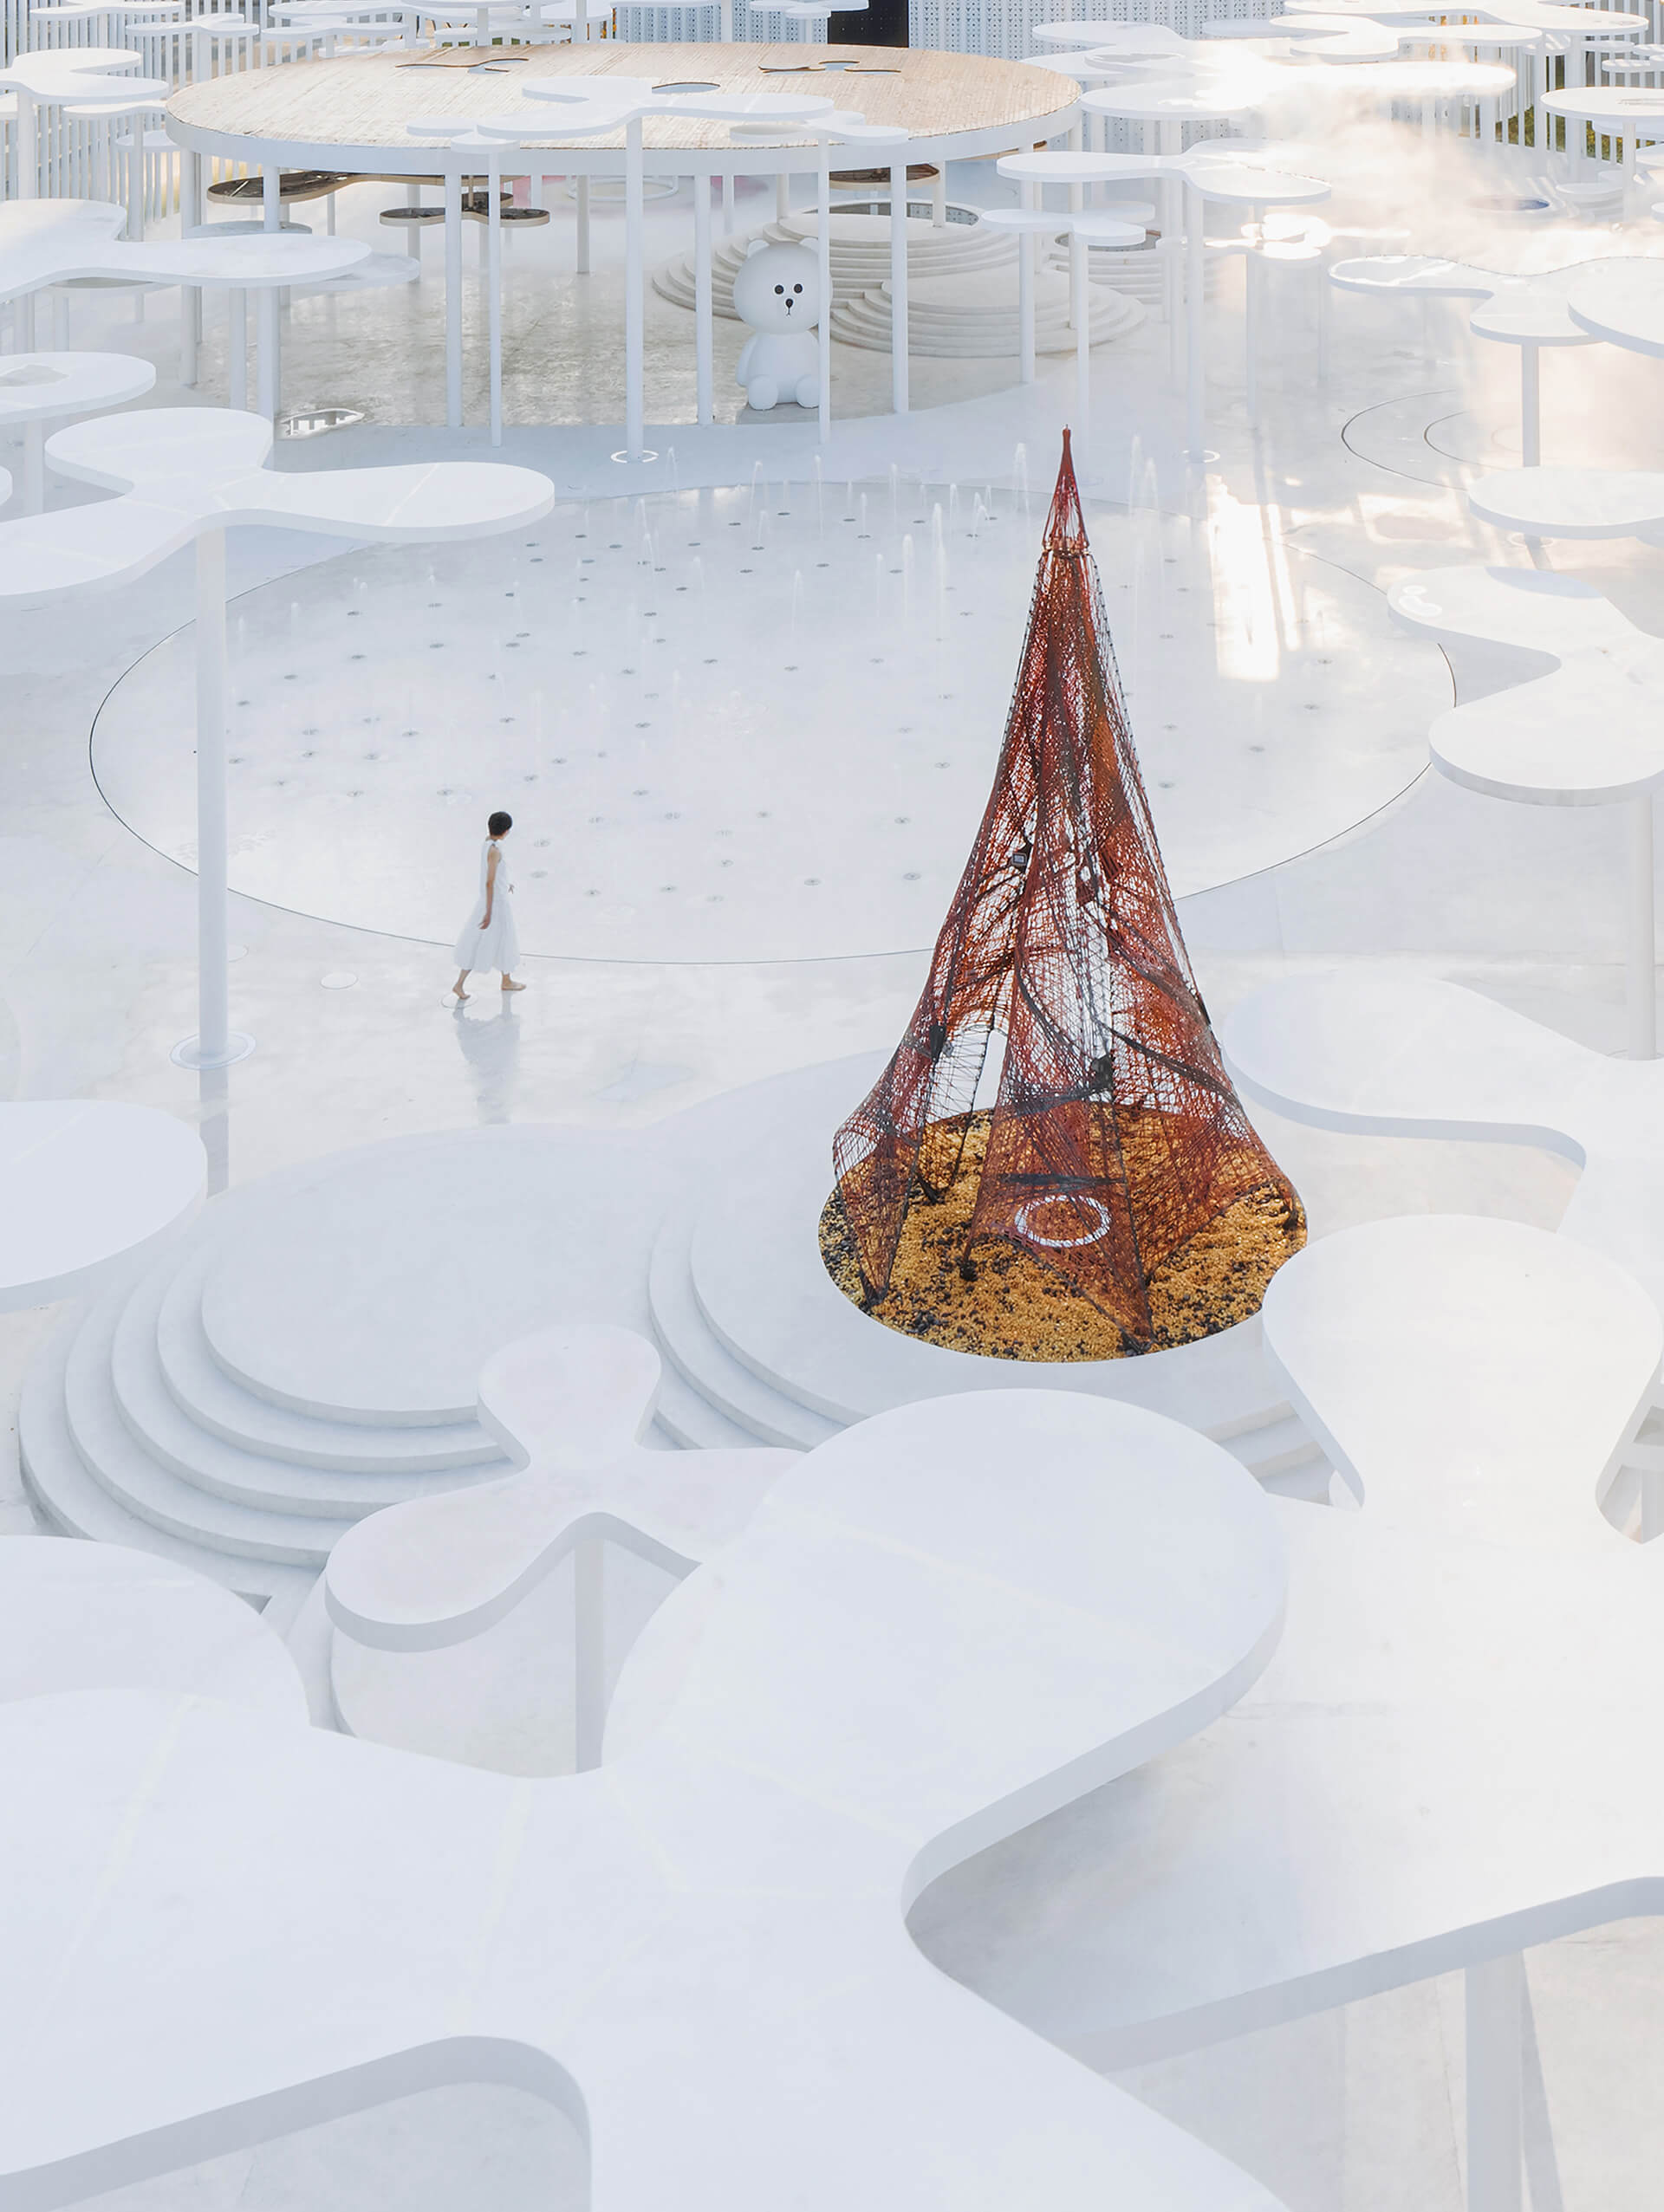 The design allows visitors to linger in a dreamscape | White Upland | Wutopia Lab | STIRworld